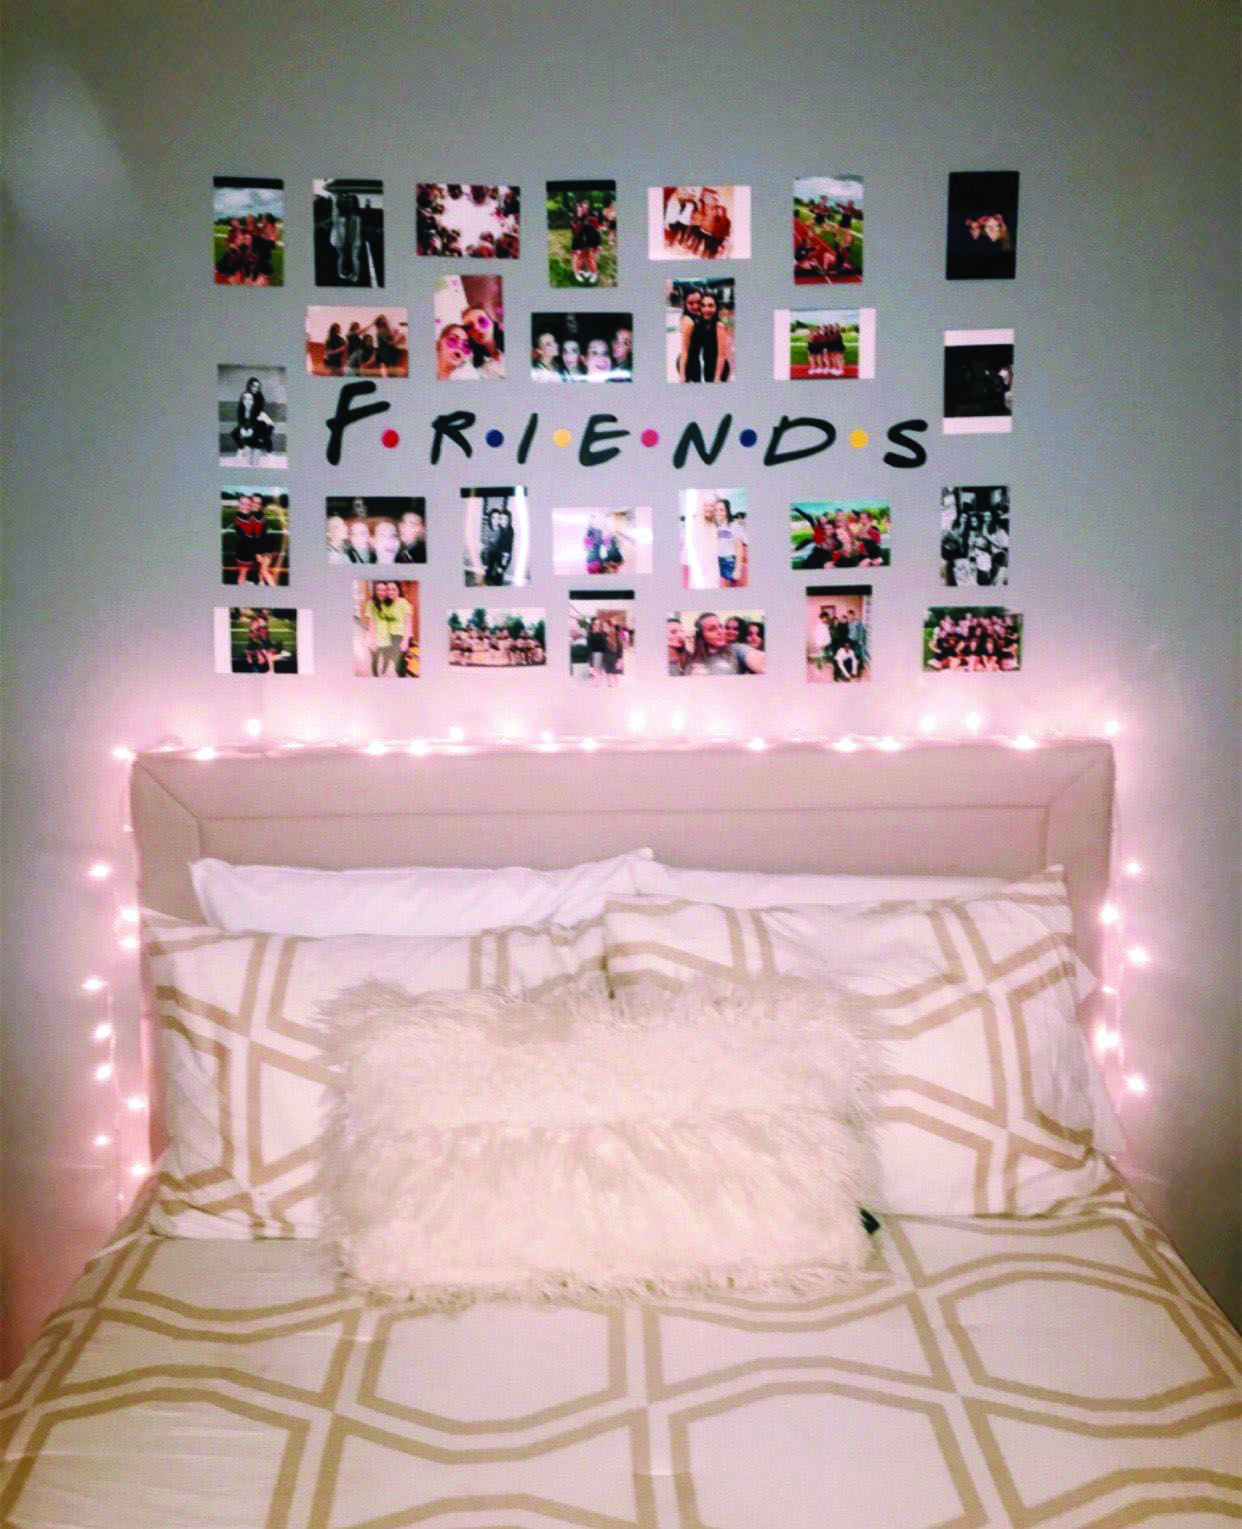 Leading Teenage Girl Bedroom Ideas For Two On This Favorite Site In 2020 Teenage Girl Room Decor Girls Room Decor Girly Bedroom